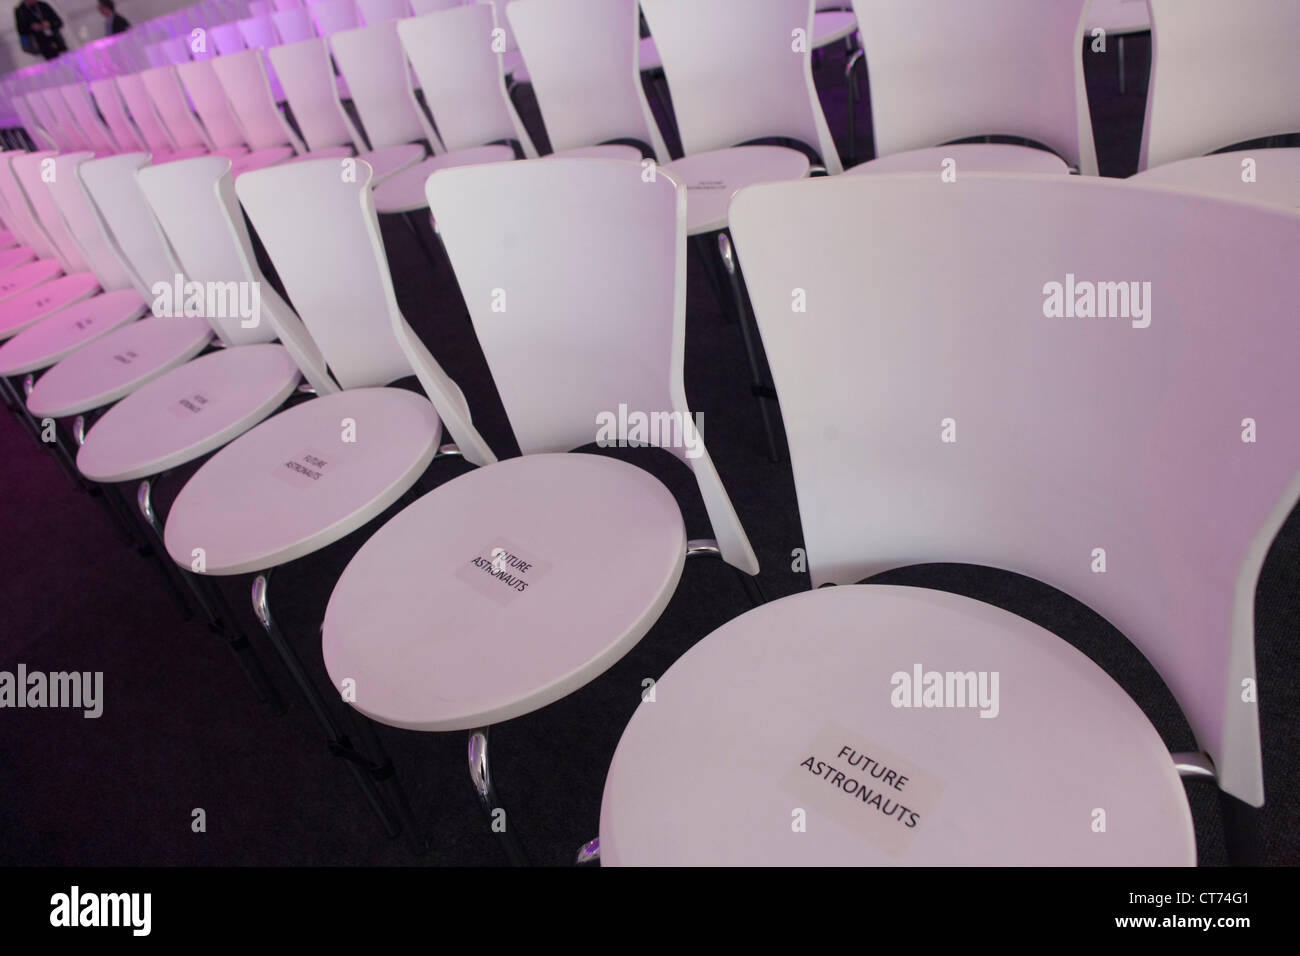 Empty seats to be filled by upcoming astronauts at a PR event by Virgin Galactic. - Stock Image